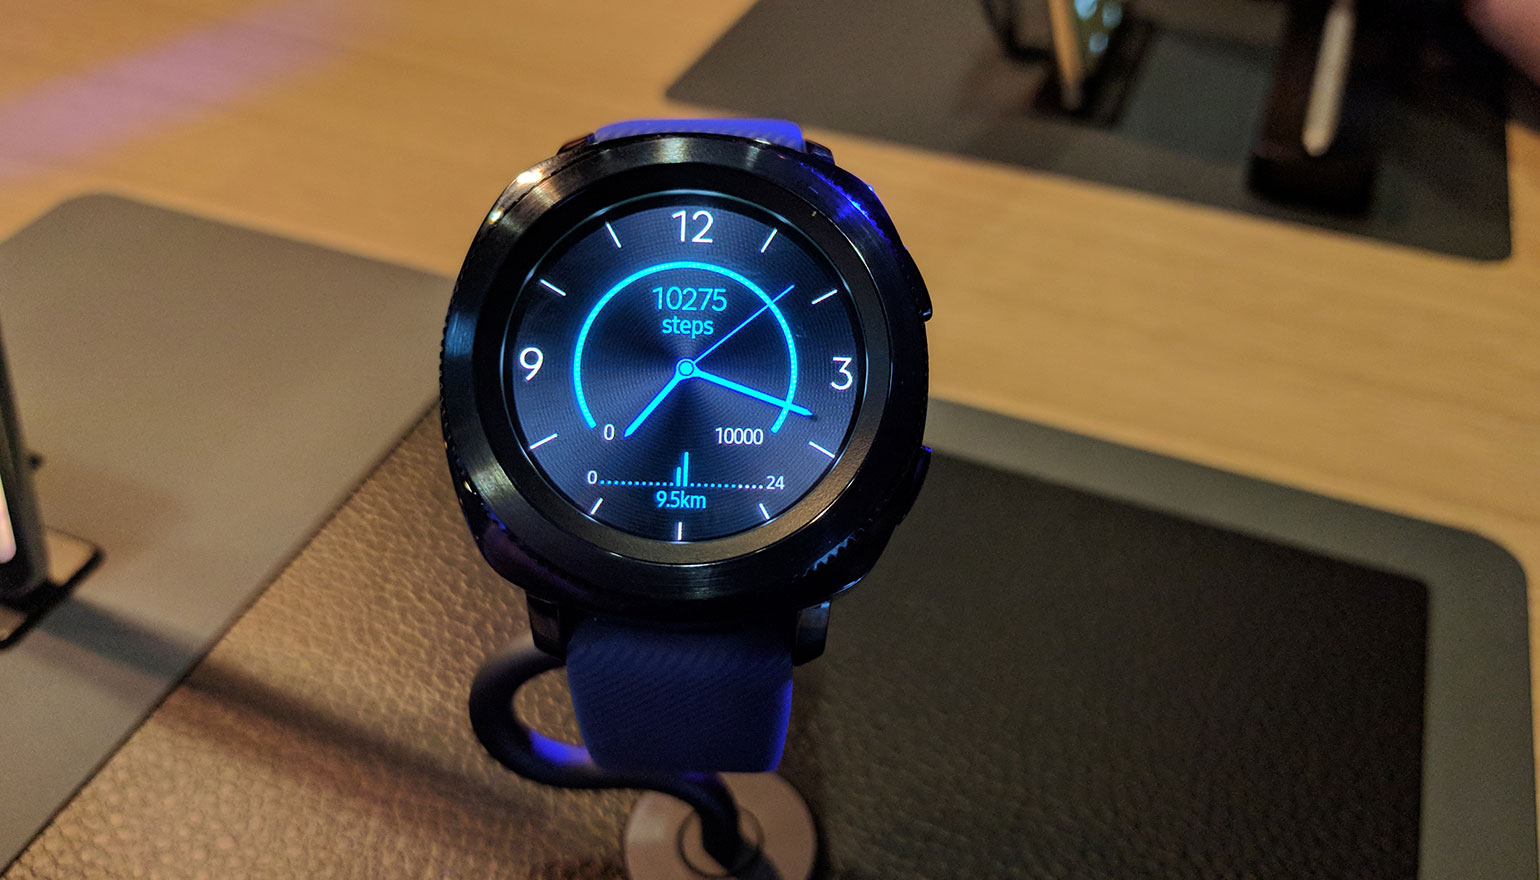 Hands-on met de Samsung Gear Sport, de nieuwe Samsung-wearable